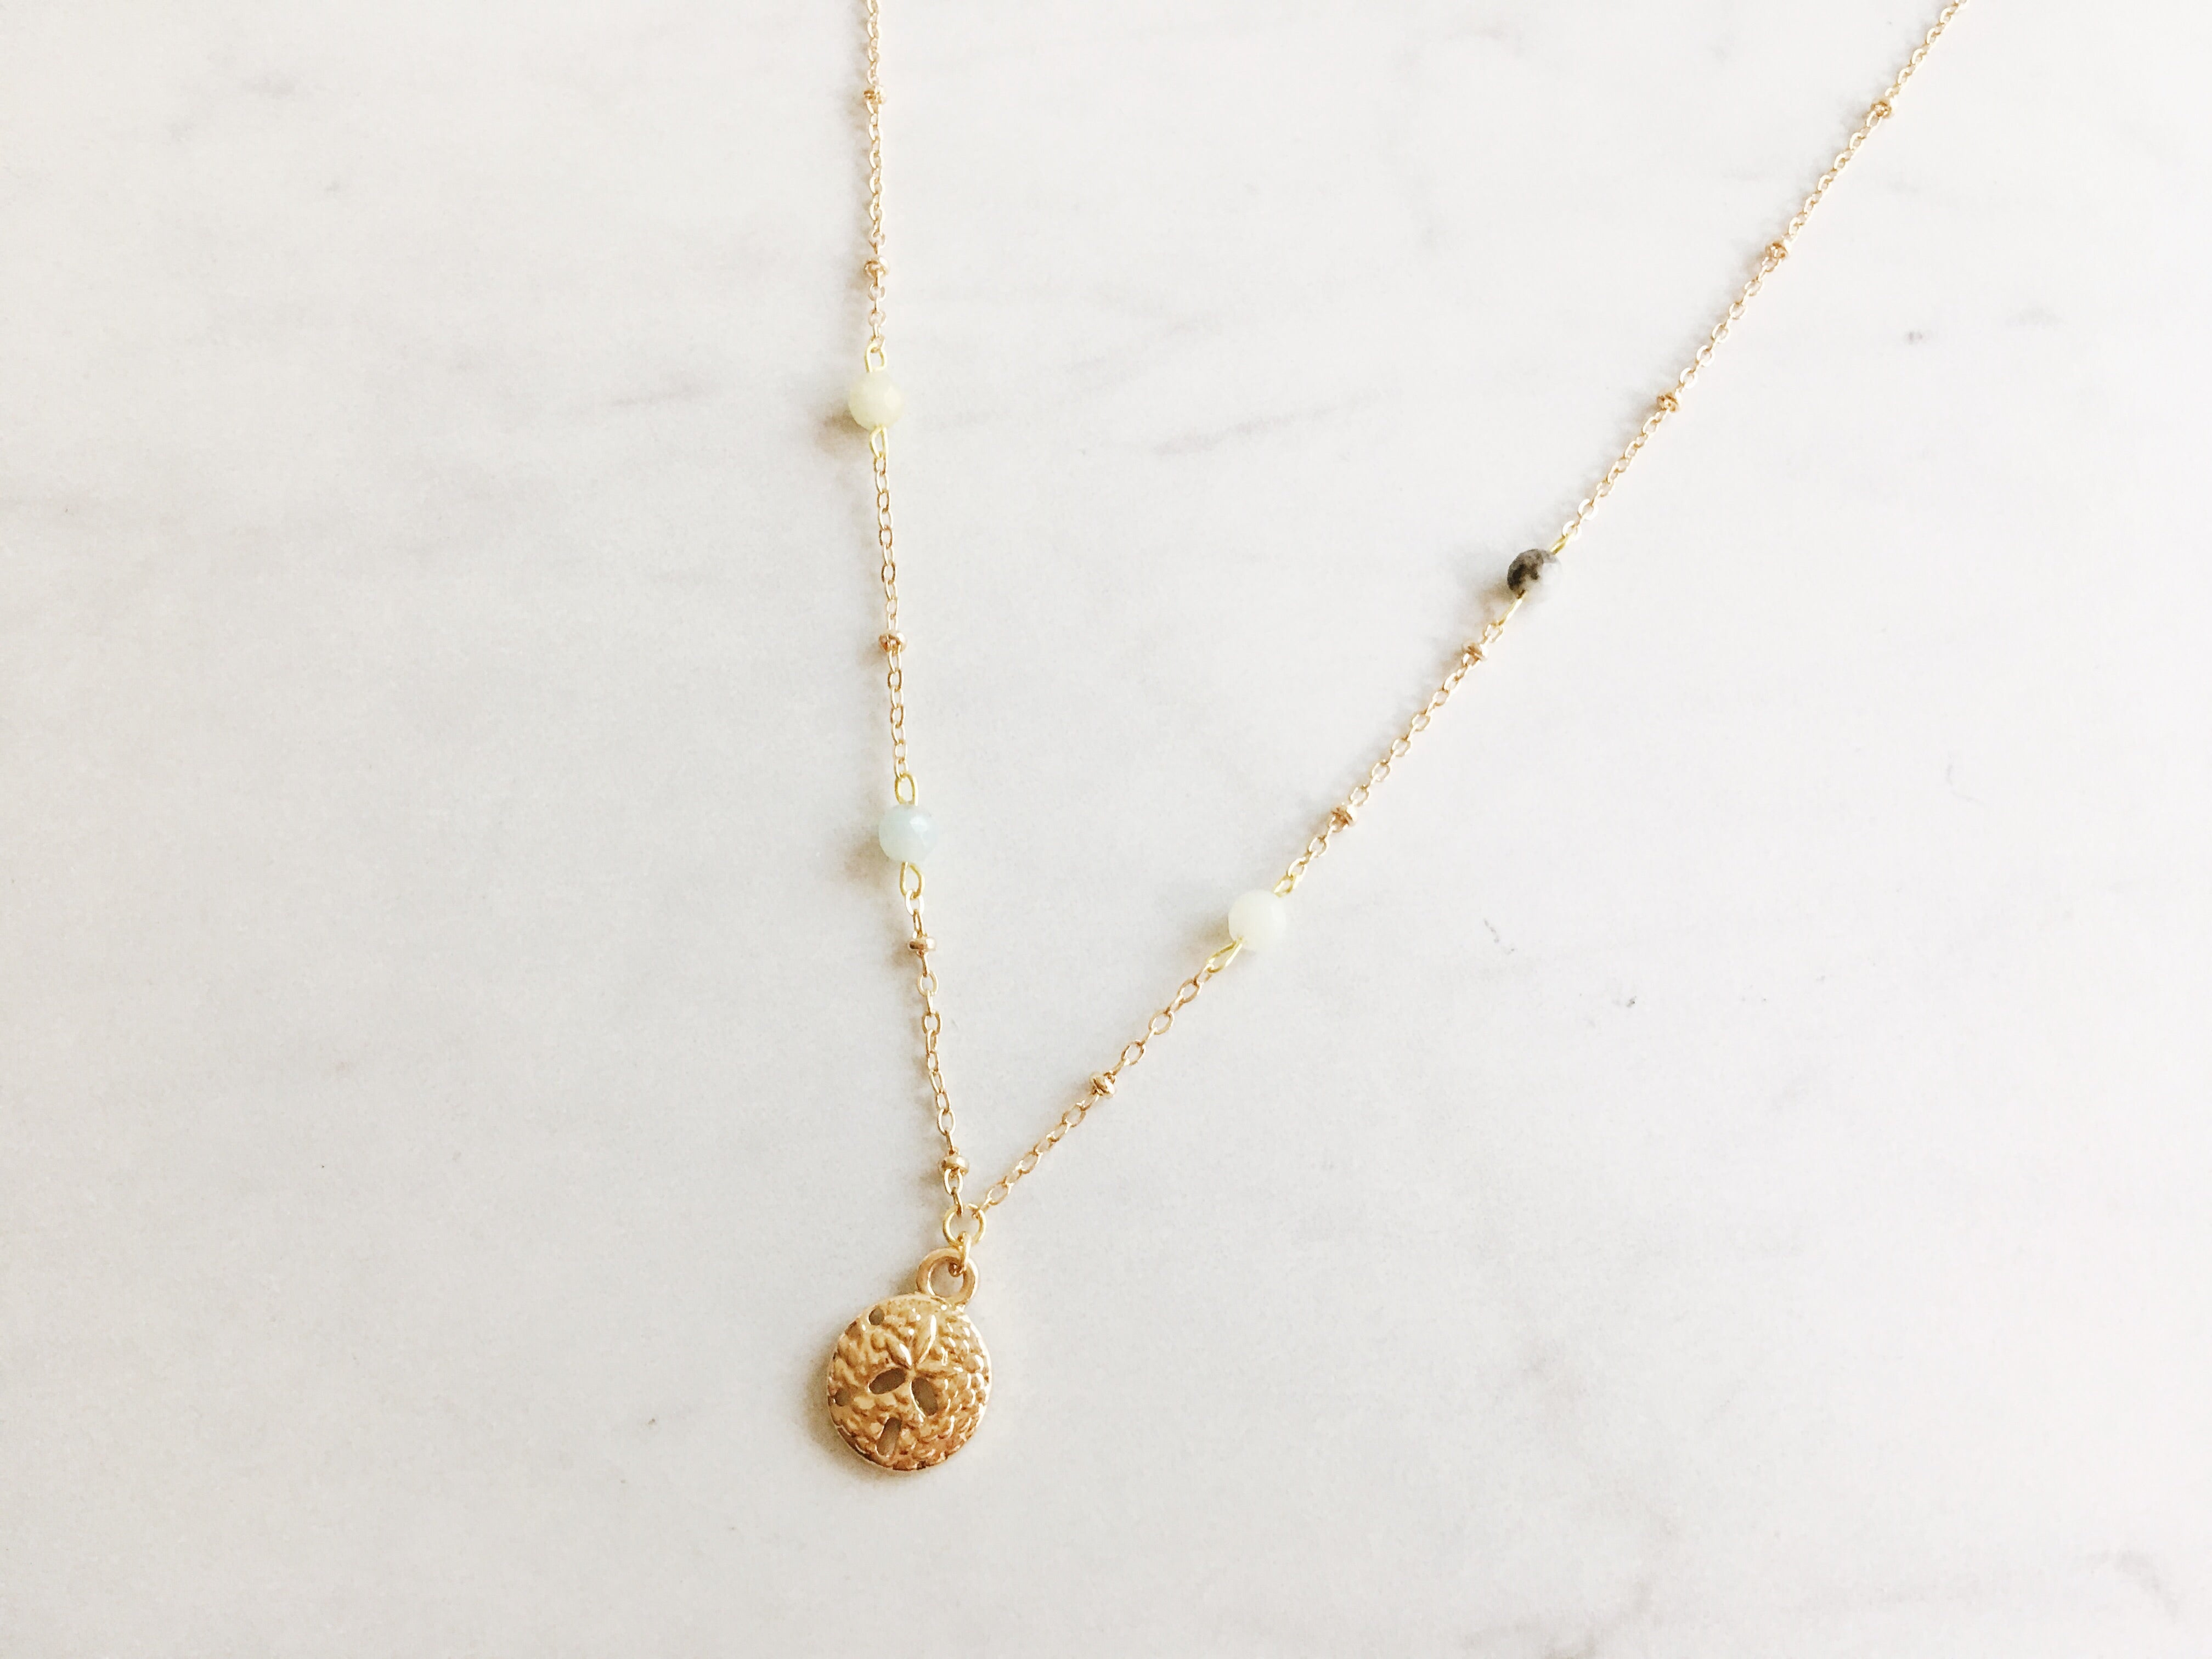 Salty Air Necklace